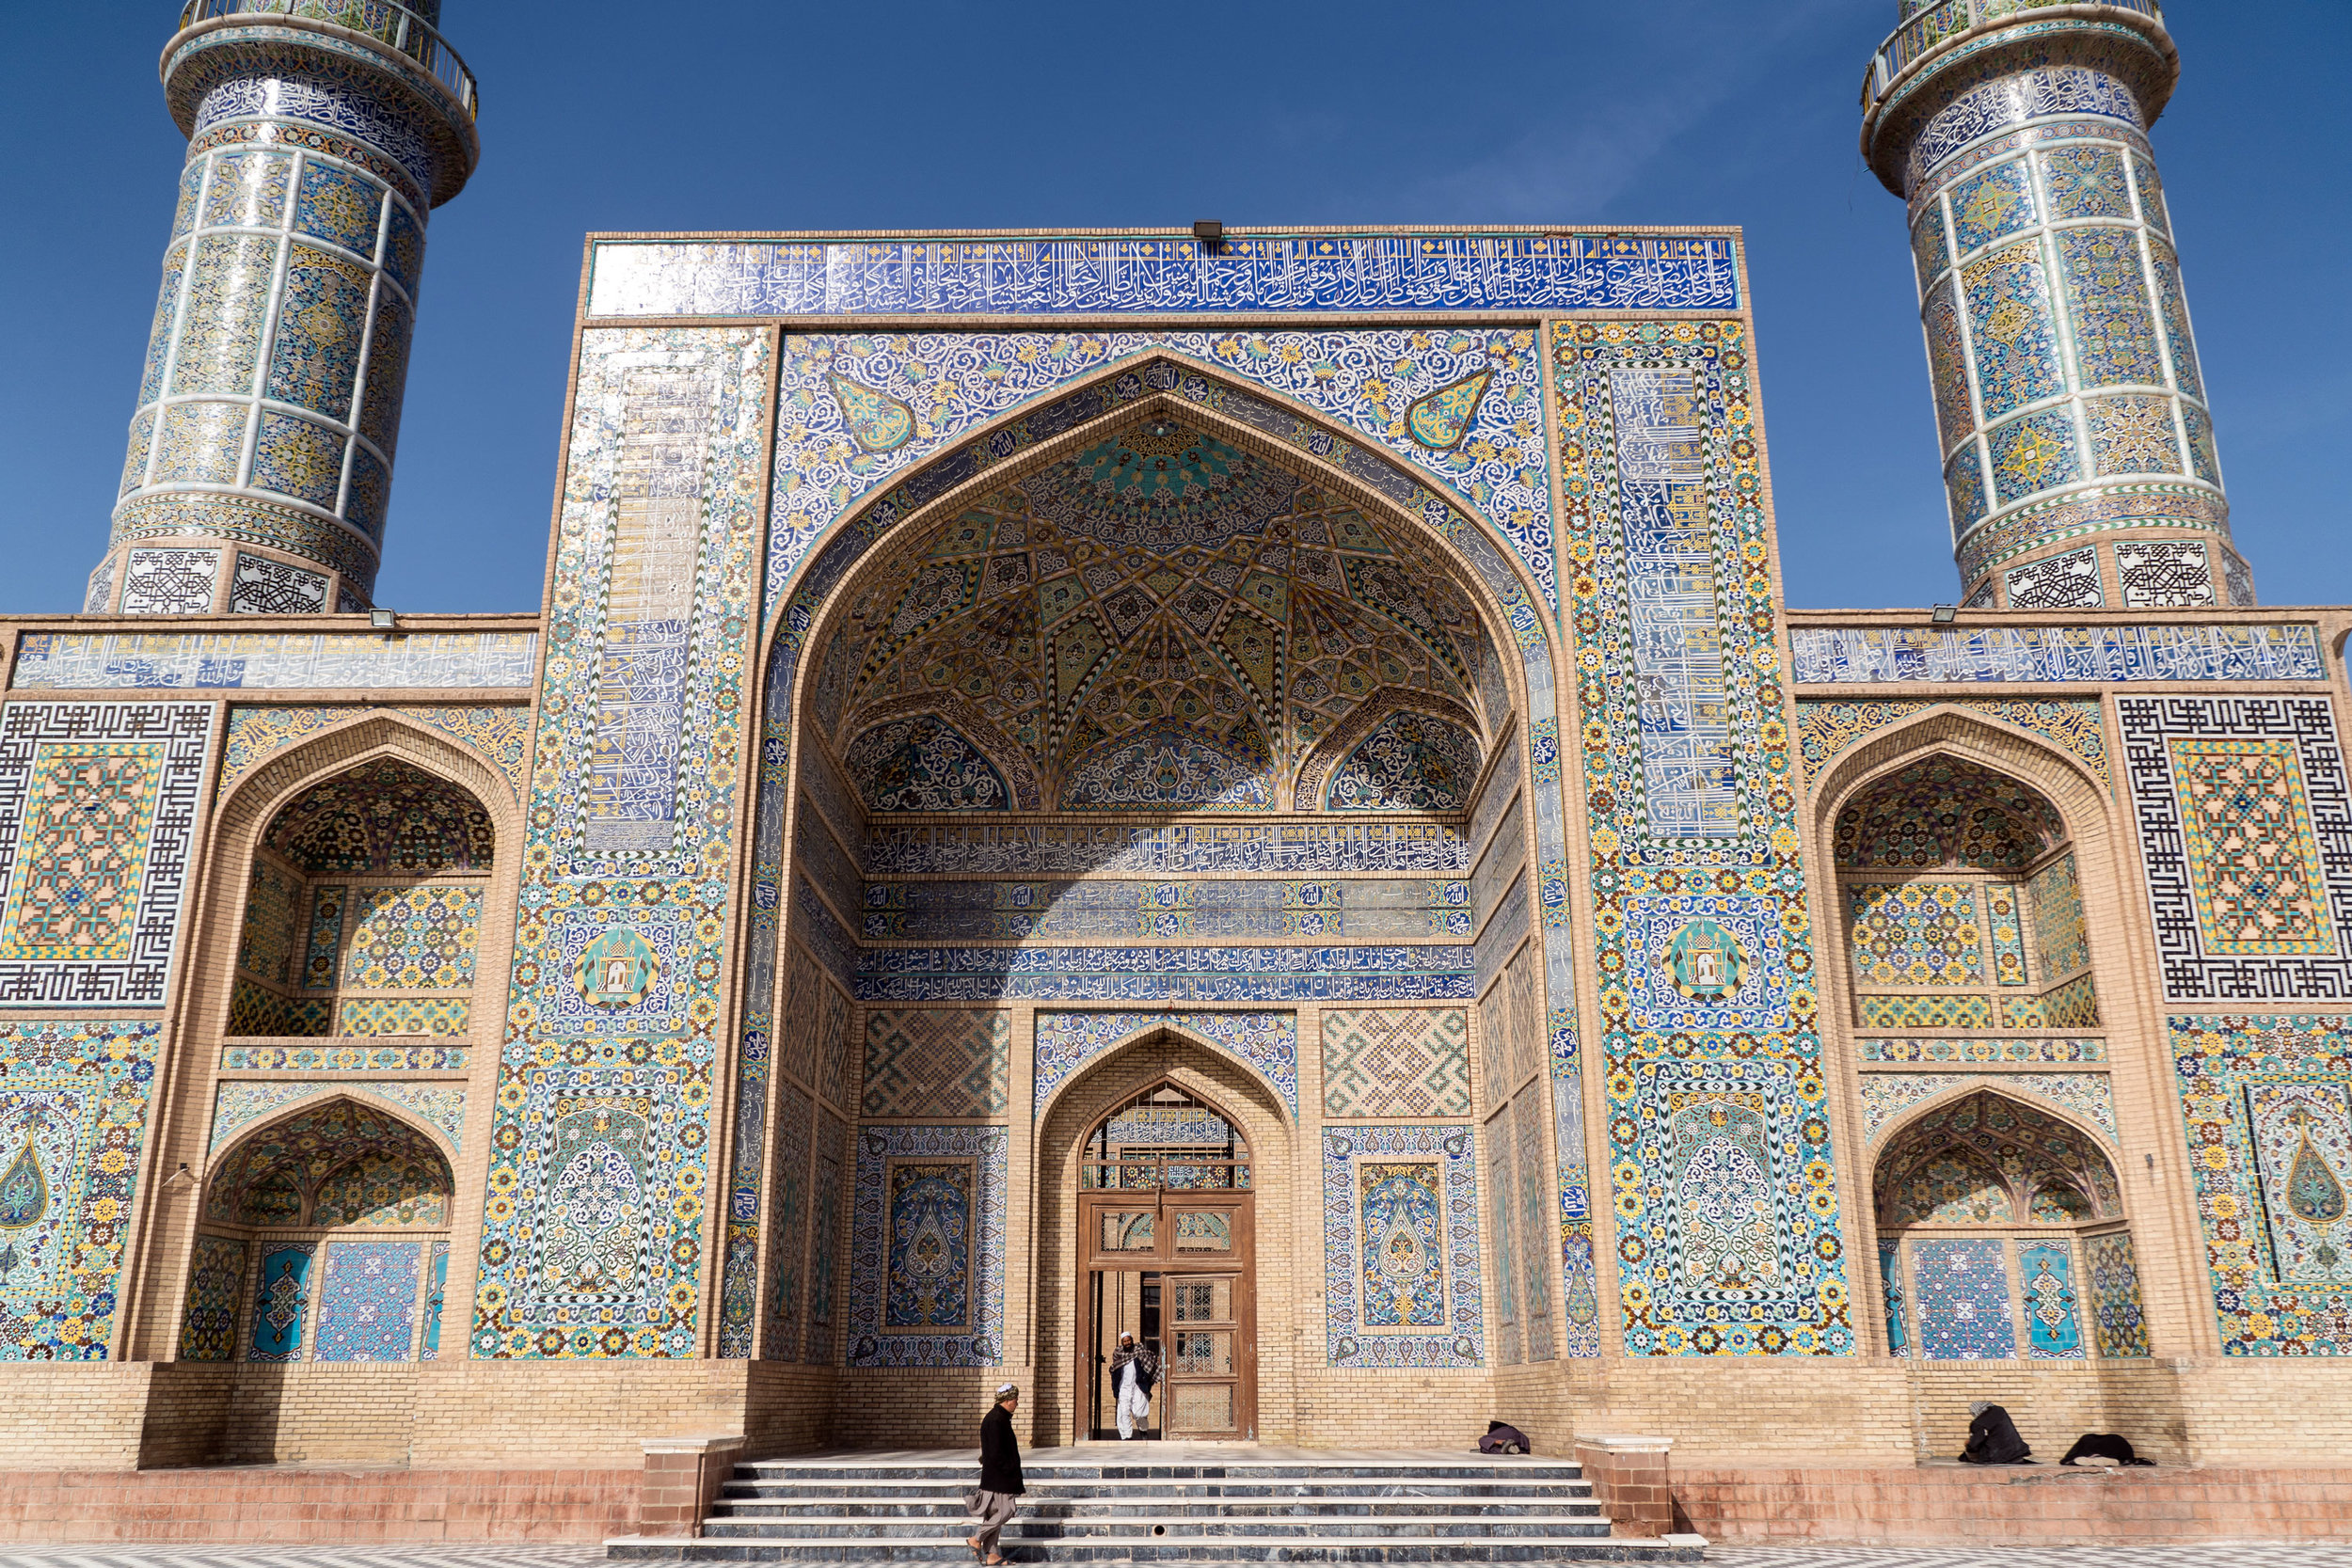 friday-mosque-herat-afghanistan-travel-to-afghanistan-inertia-network.jpg